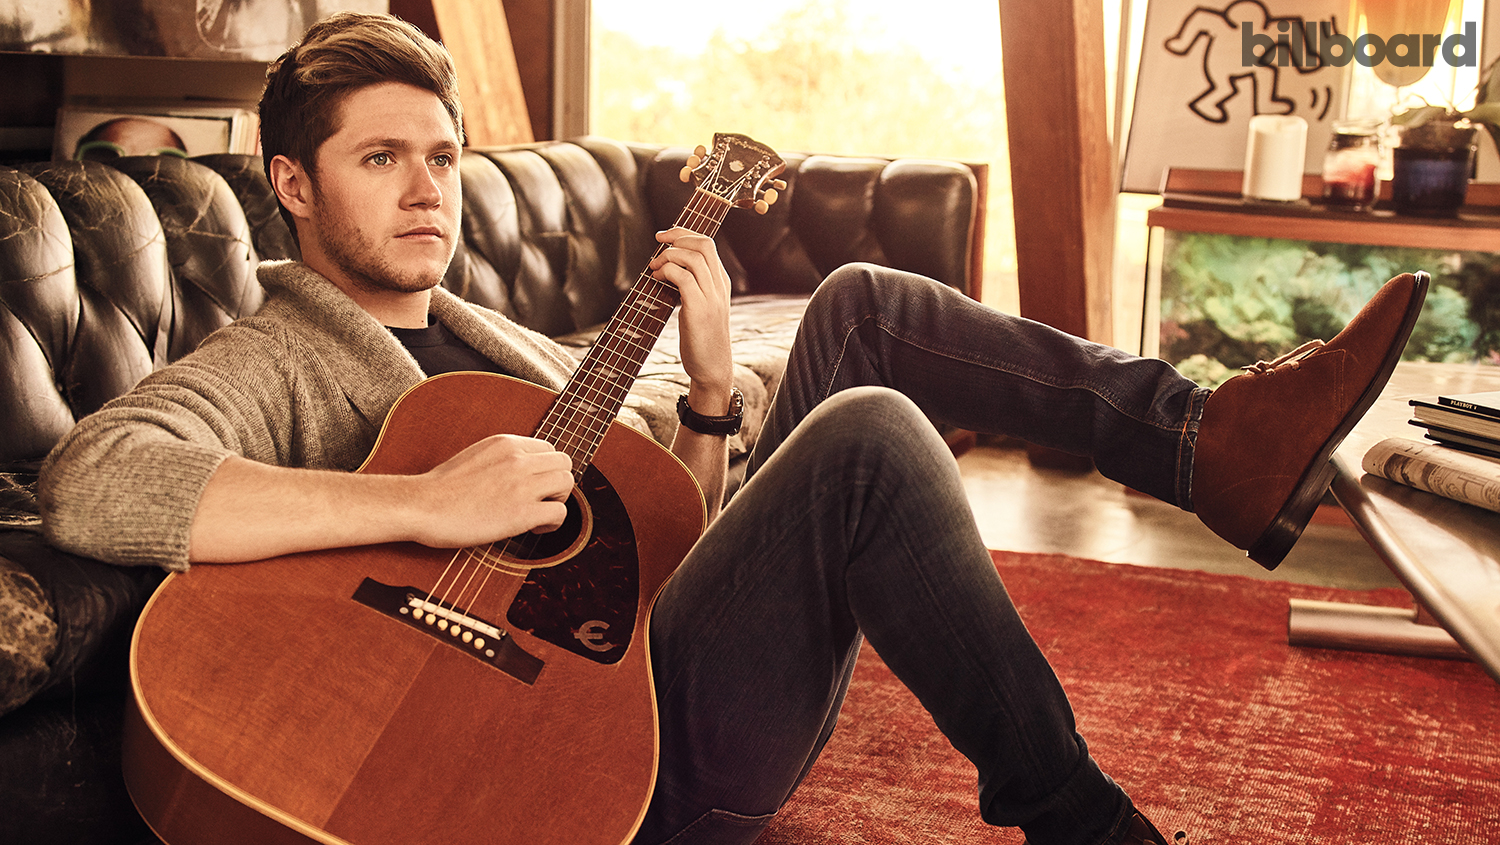 Cute Baby Girl With Guitar Wallpaper Niall Horan Ex One Direction Anuncia Shows No Brasil Em 2018